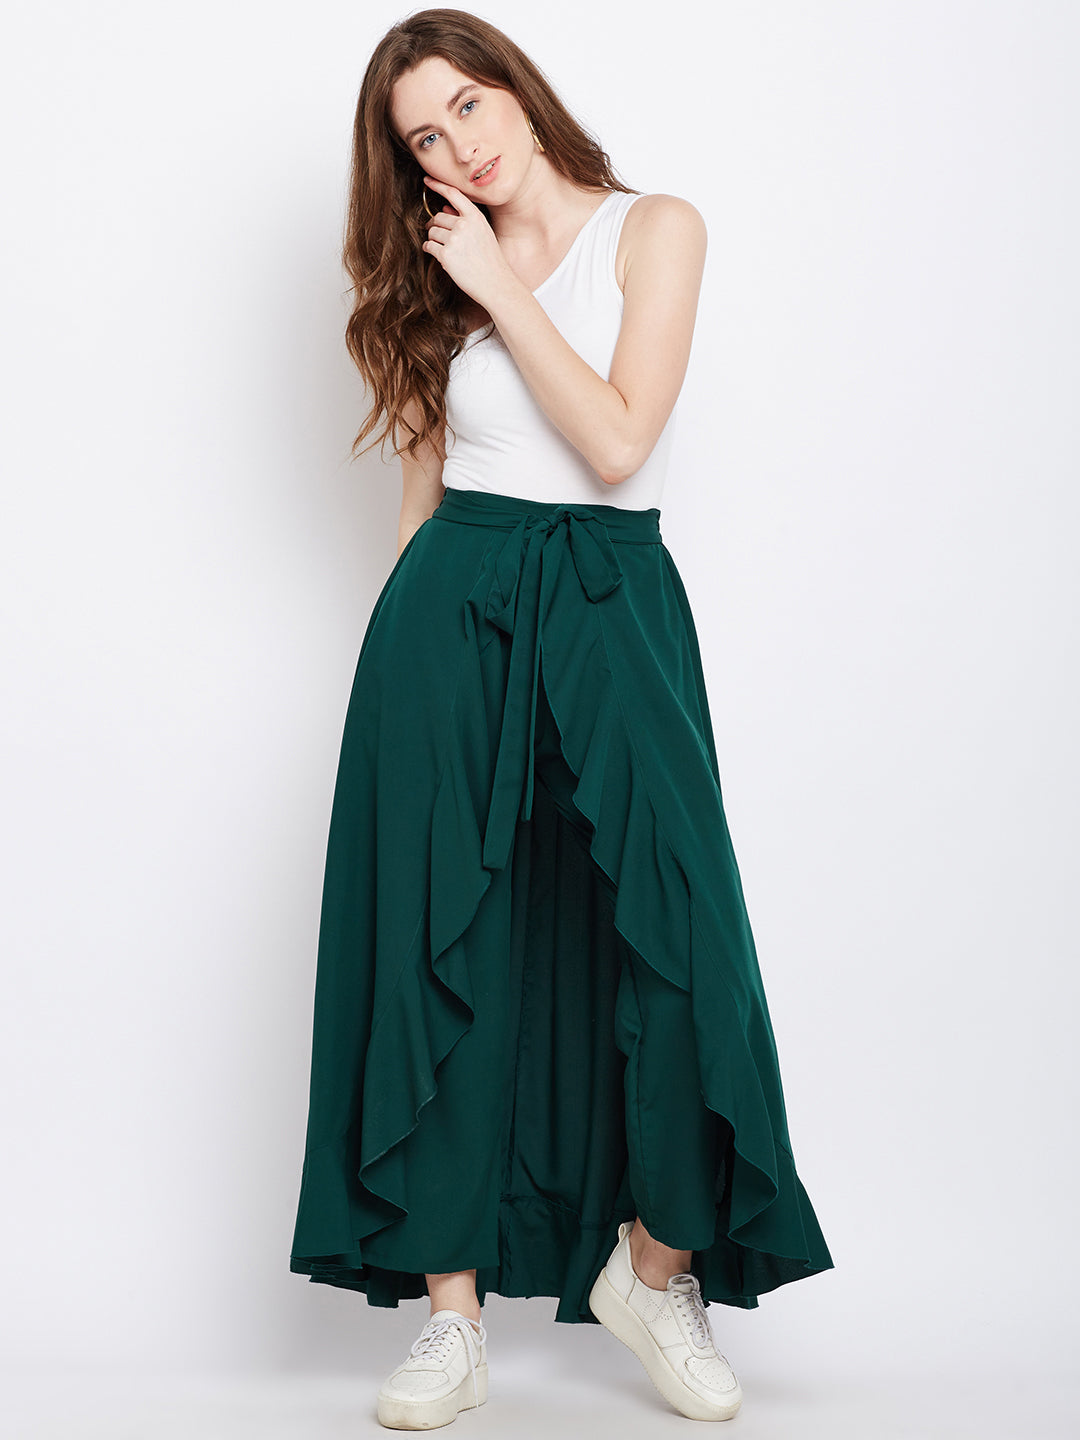 b1ed856fdd3 Green Solid Ruffled Wrap Maxi Skirt with Attached Palazzo - Berrylush